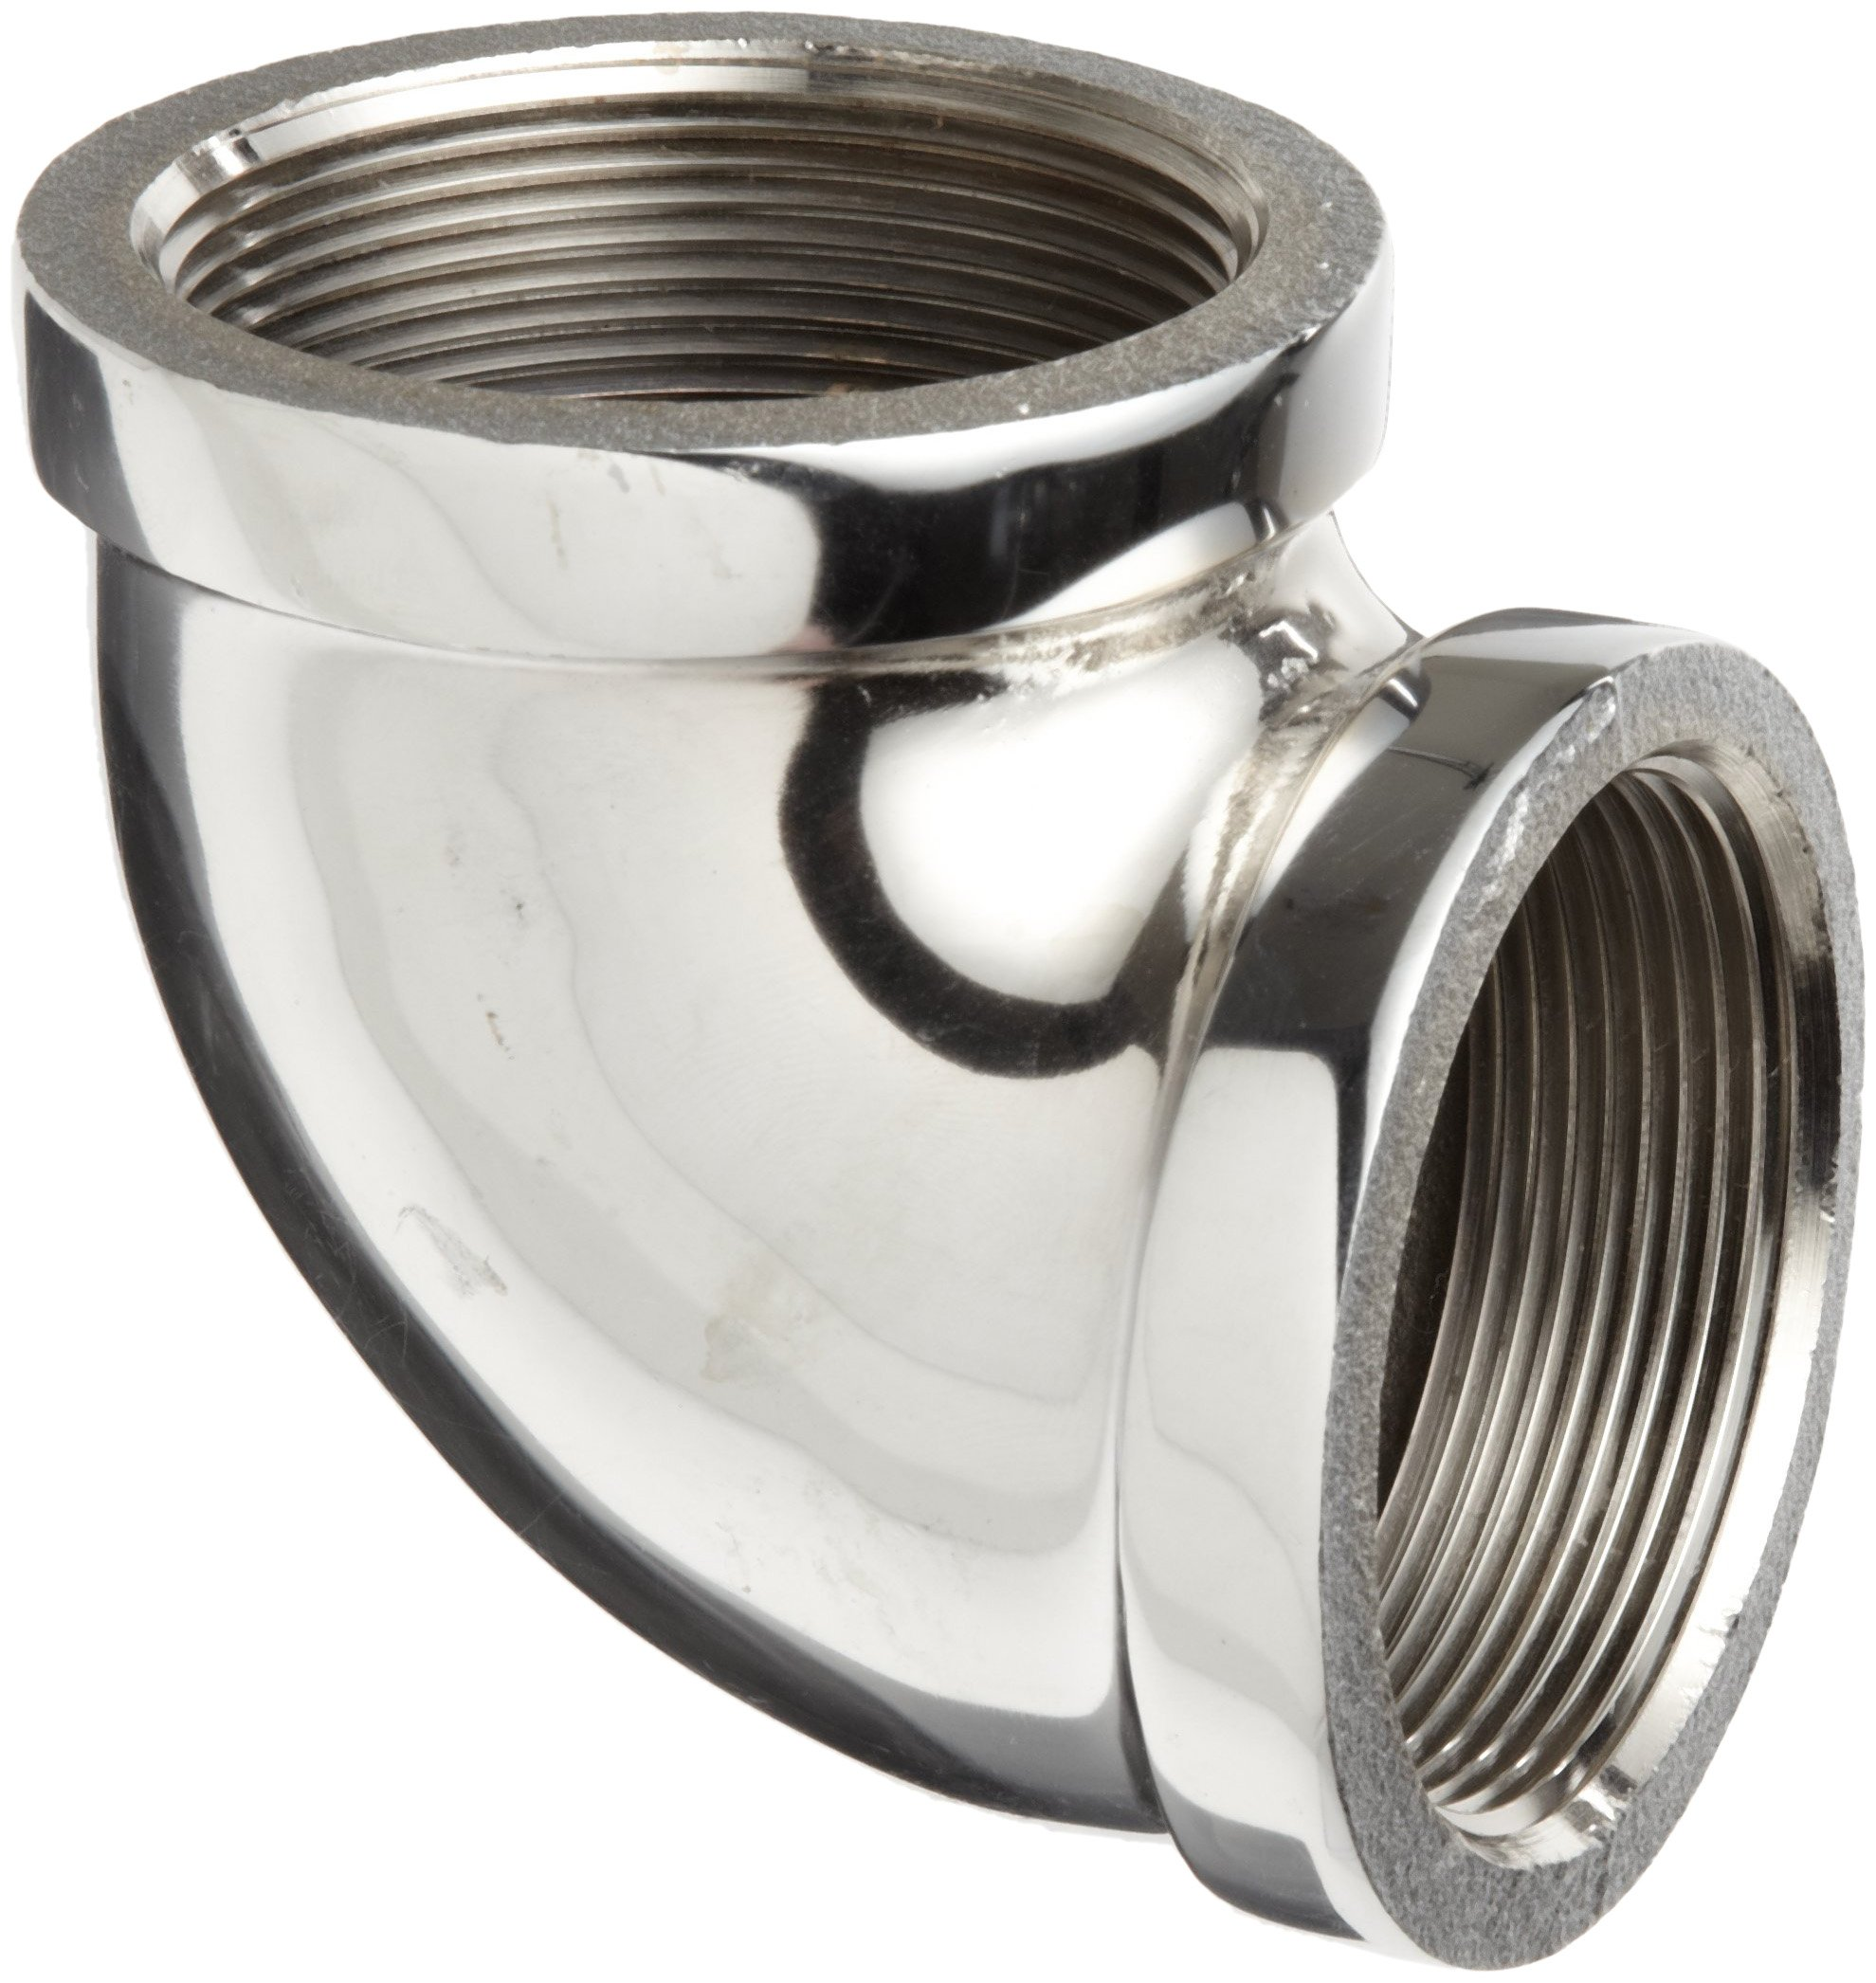 Chrome Plated Brass Pipe Fitting, 90 Degree Elbow, 1/2'' NPT Female